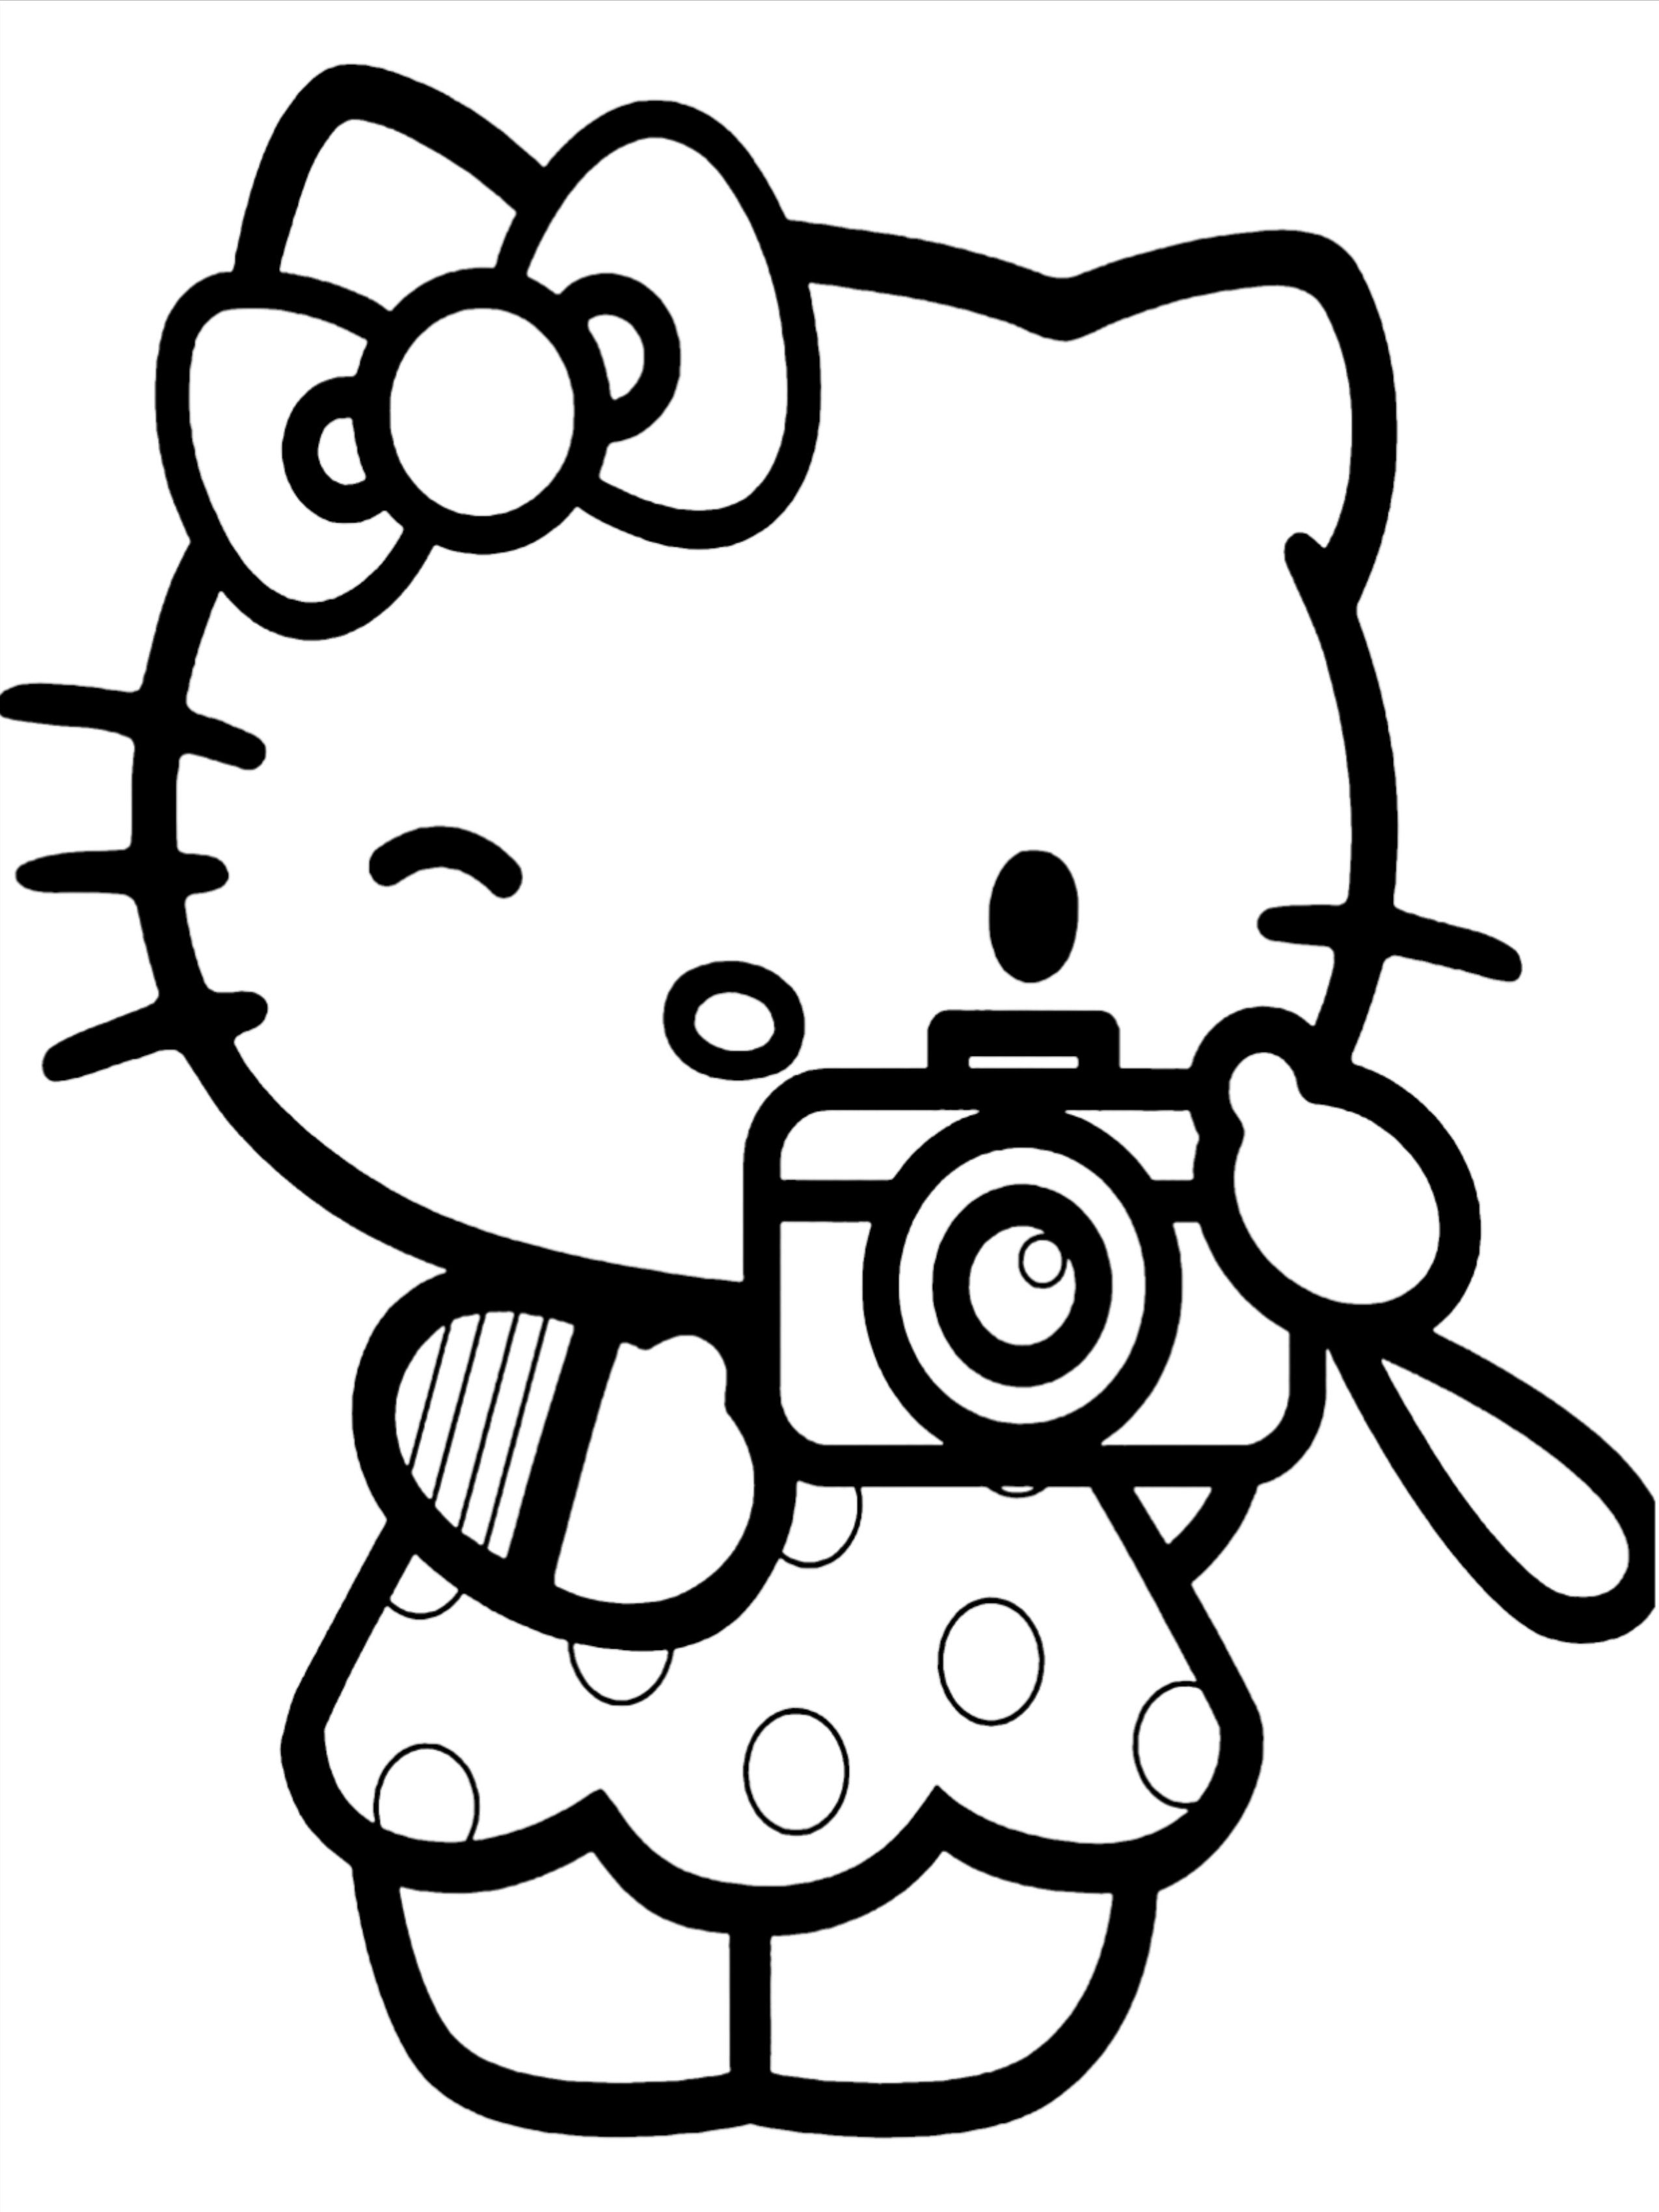 50 Hello Kitty Coloring Pages For Kids Hello Kitty Colouring Pages Hello Kitty Coloring Cool Coloring Pages